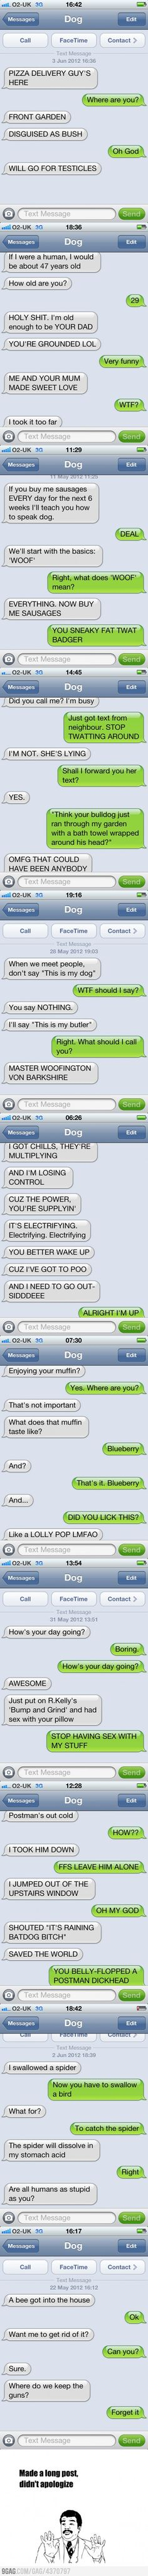 funniest thing i've read in a while.. picture your own dog saying this stuff hahahah